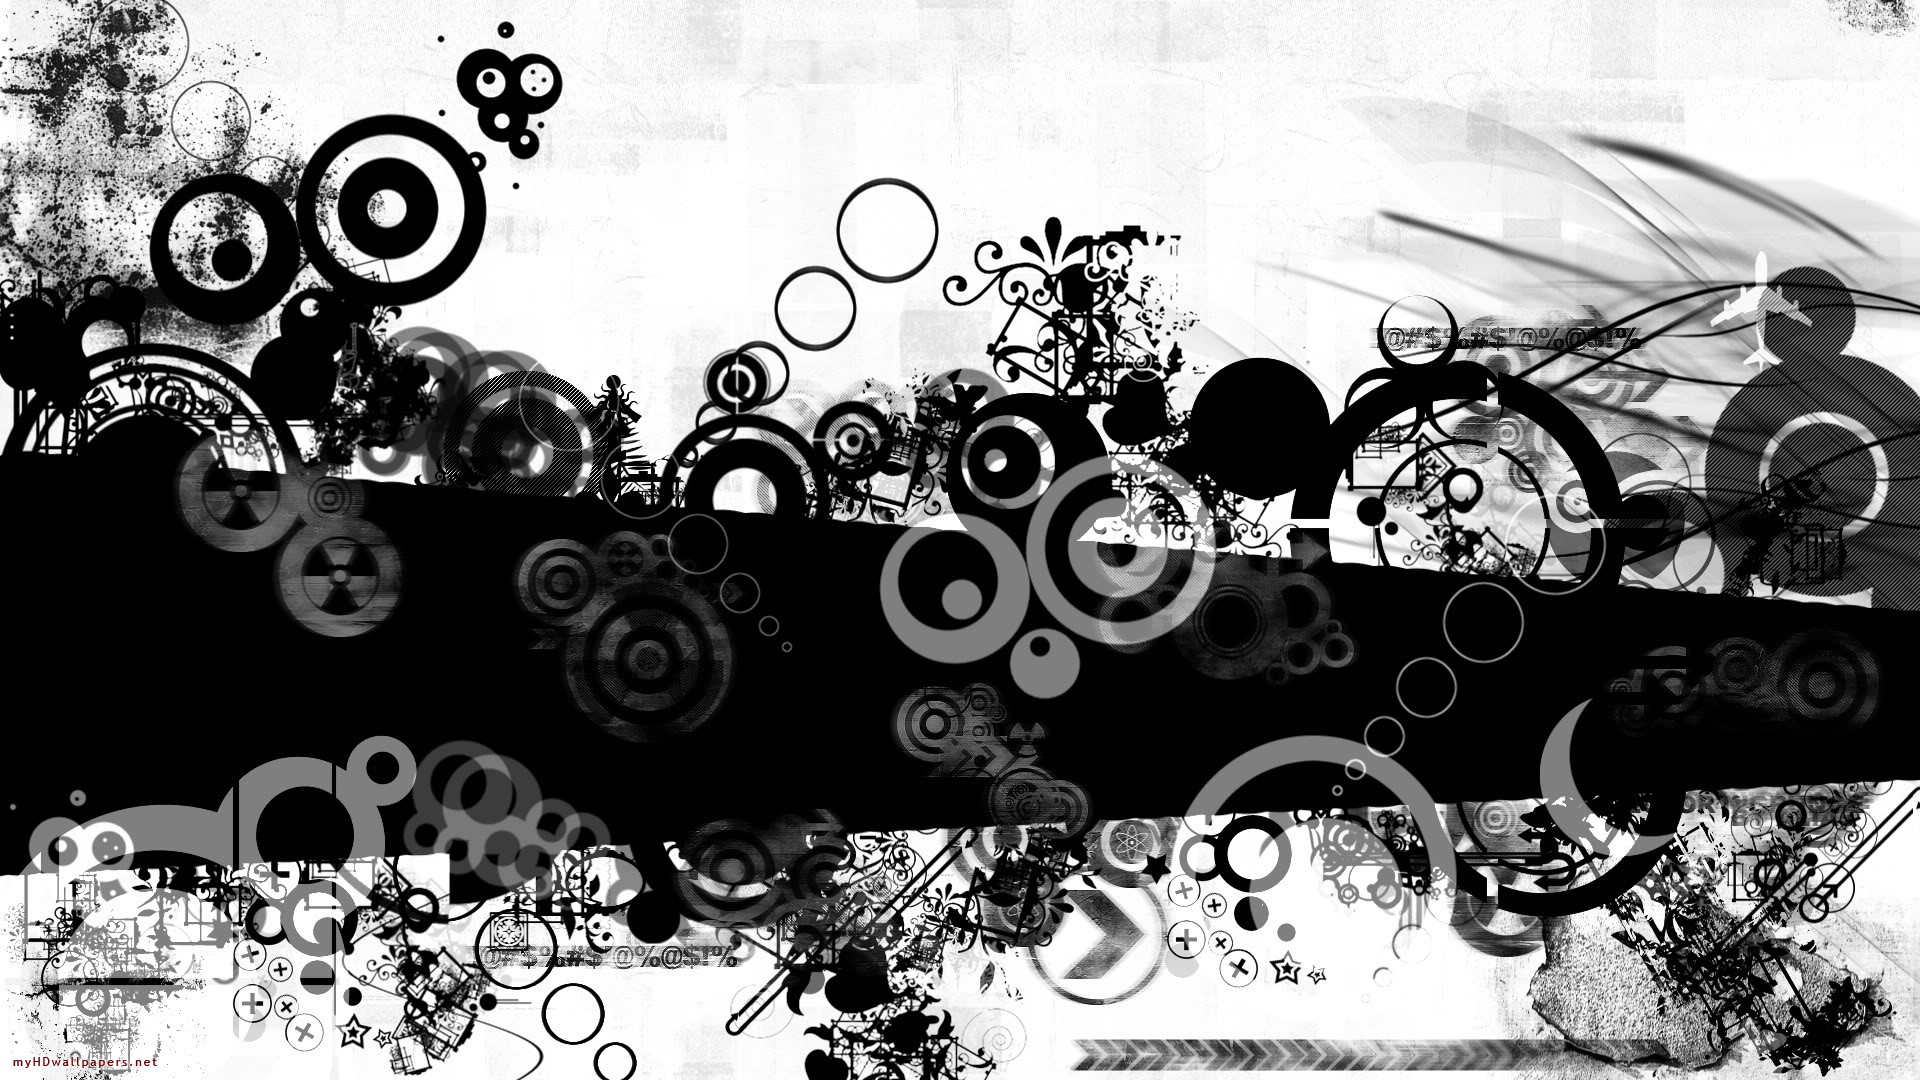 52 HD Black And White Wallpaper For Download: wonderfulengineering.com/52-hd-black-and-white-wallpaper-for-download